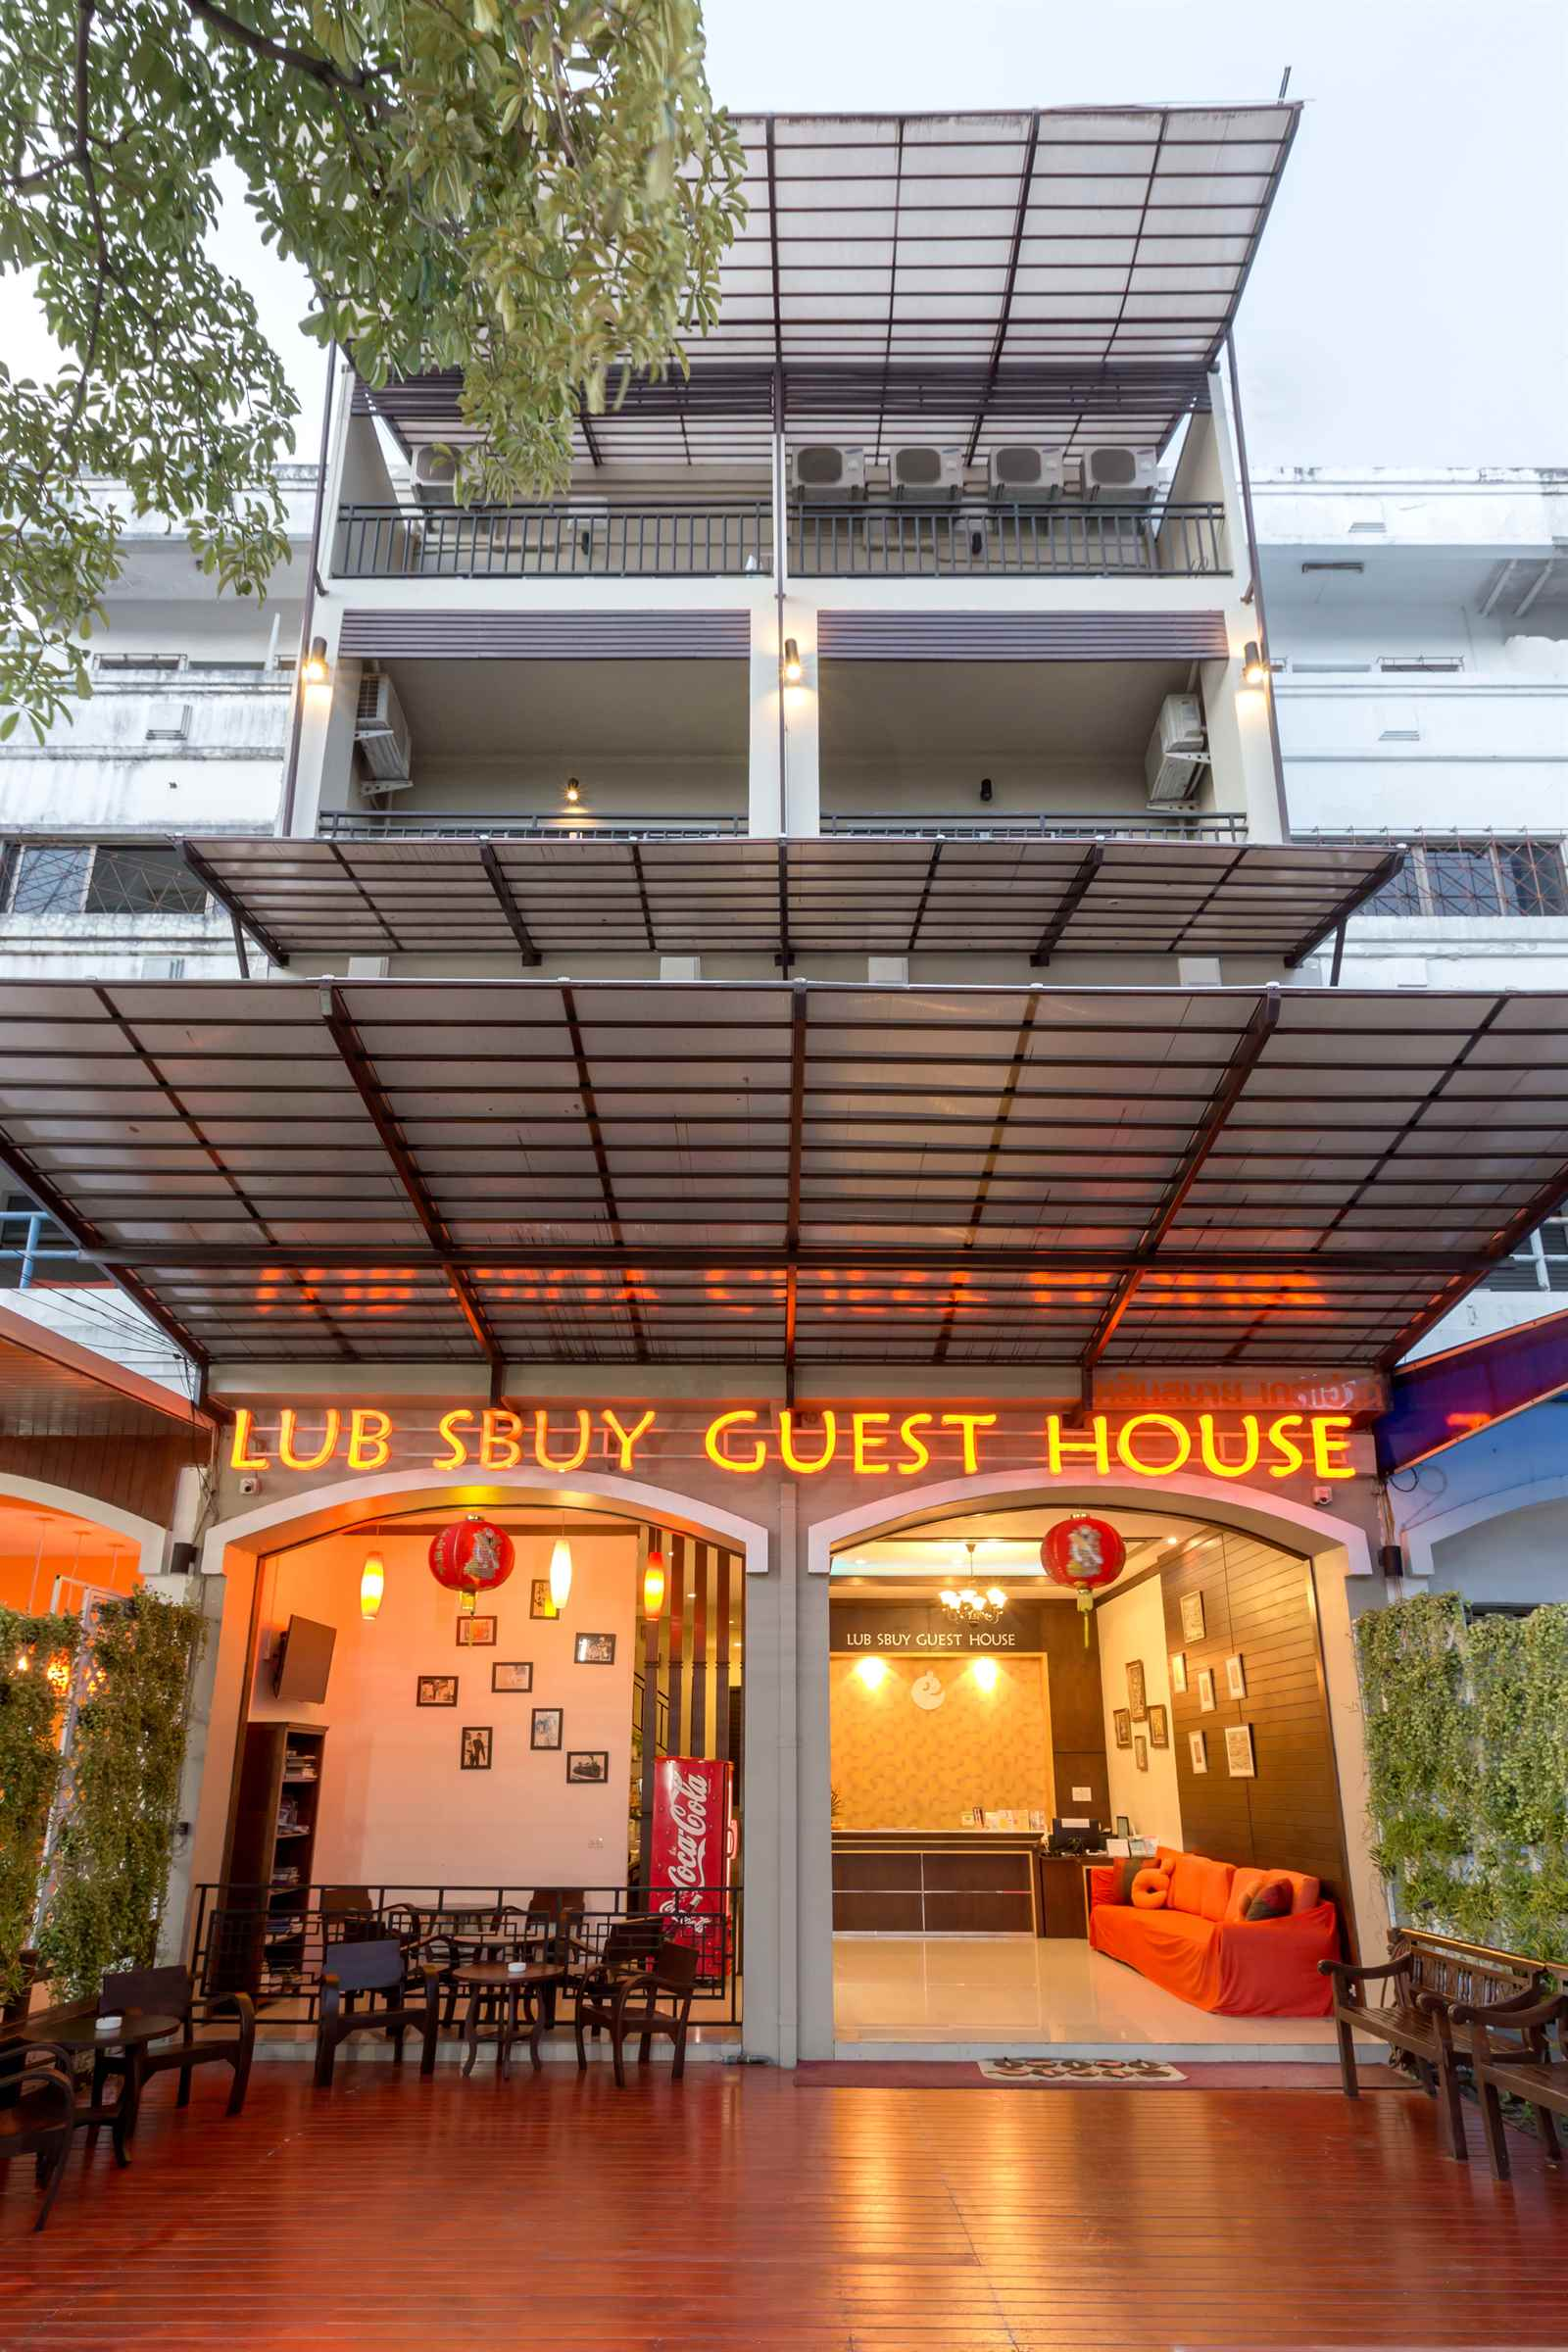 /lub-sbuy-guest-house-phuket/book